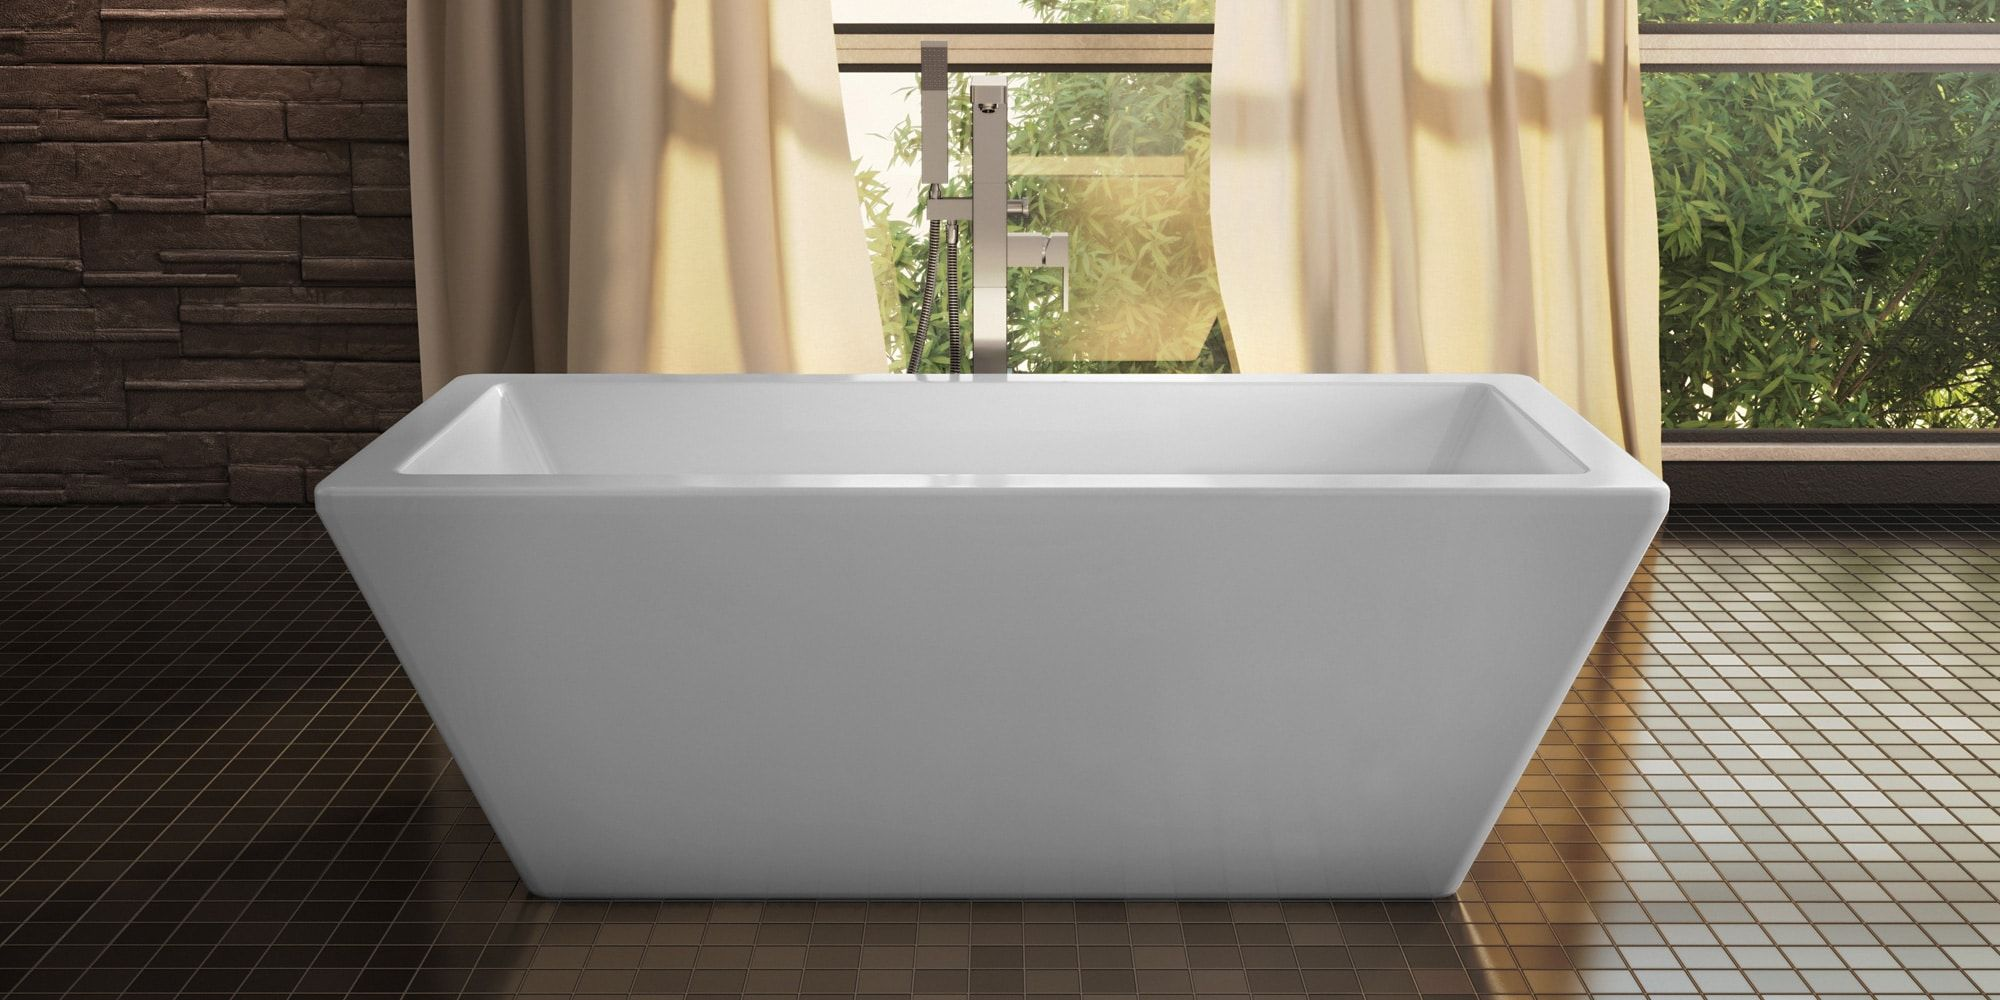 Produits Neptune Rectangular Freestanding Tub at TAPS Kitchen and Bath Showrooms